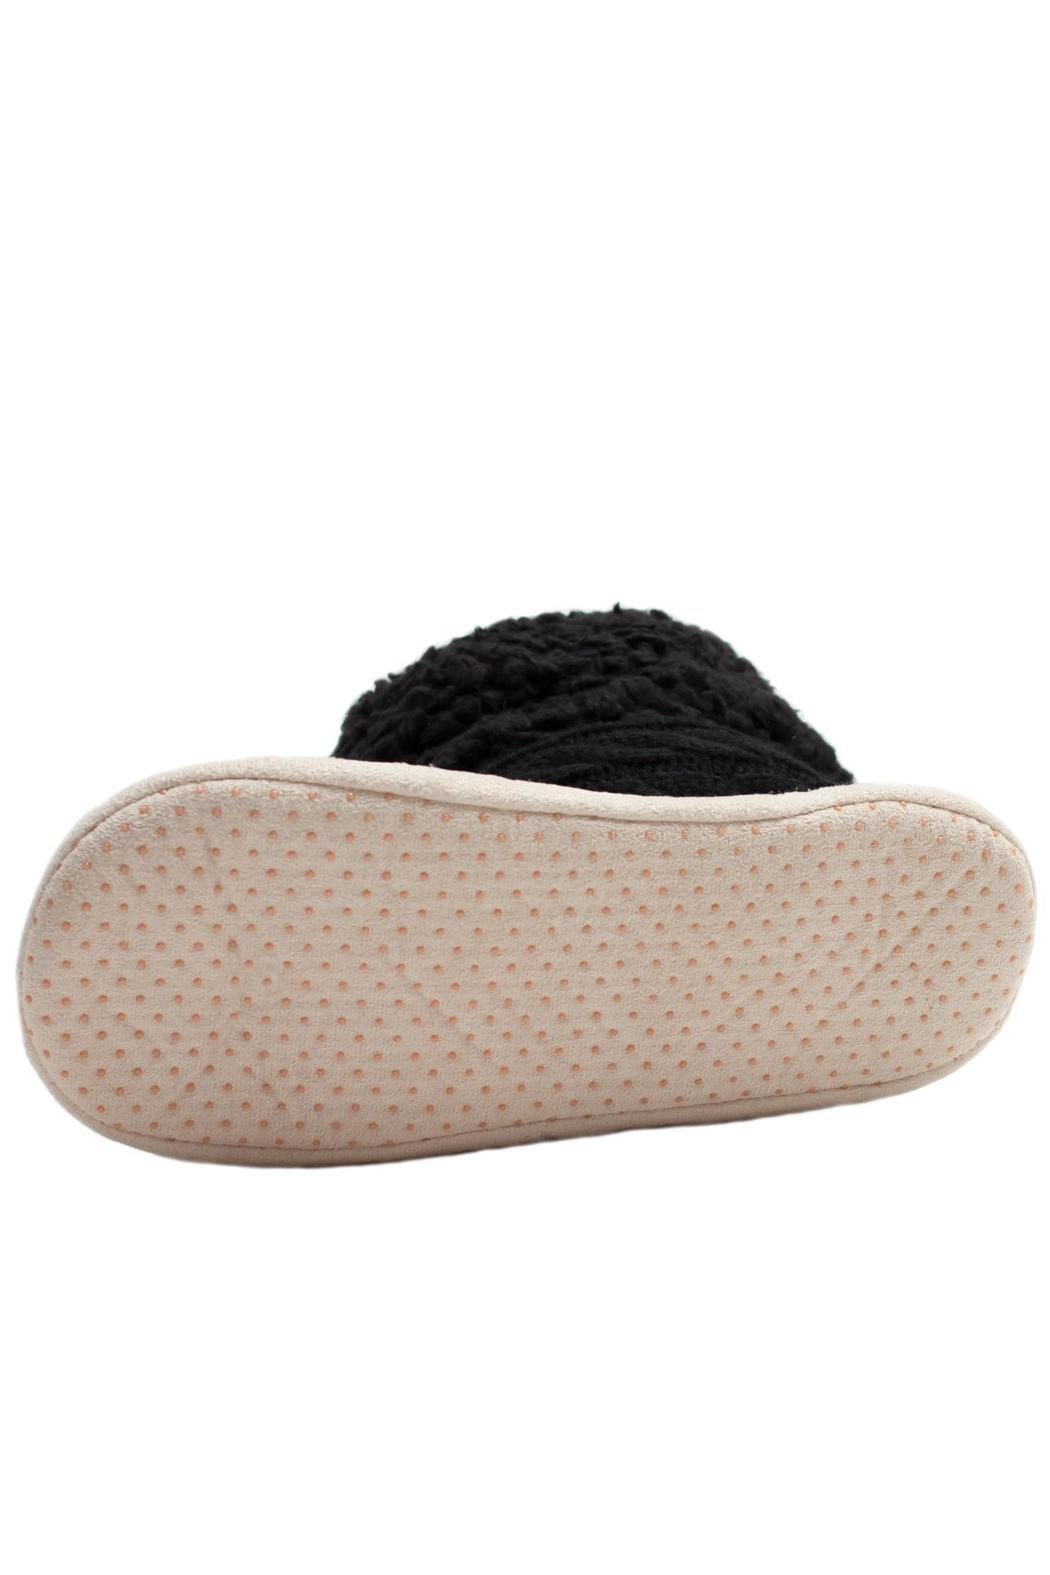 Do Everything In Love Cable Knit Slippers From Philadelphia By May